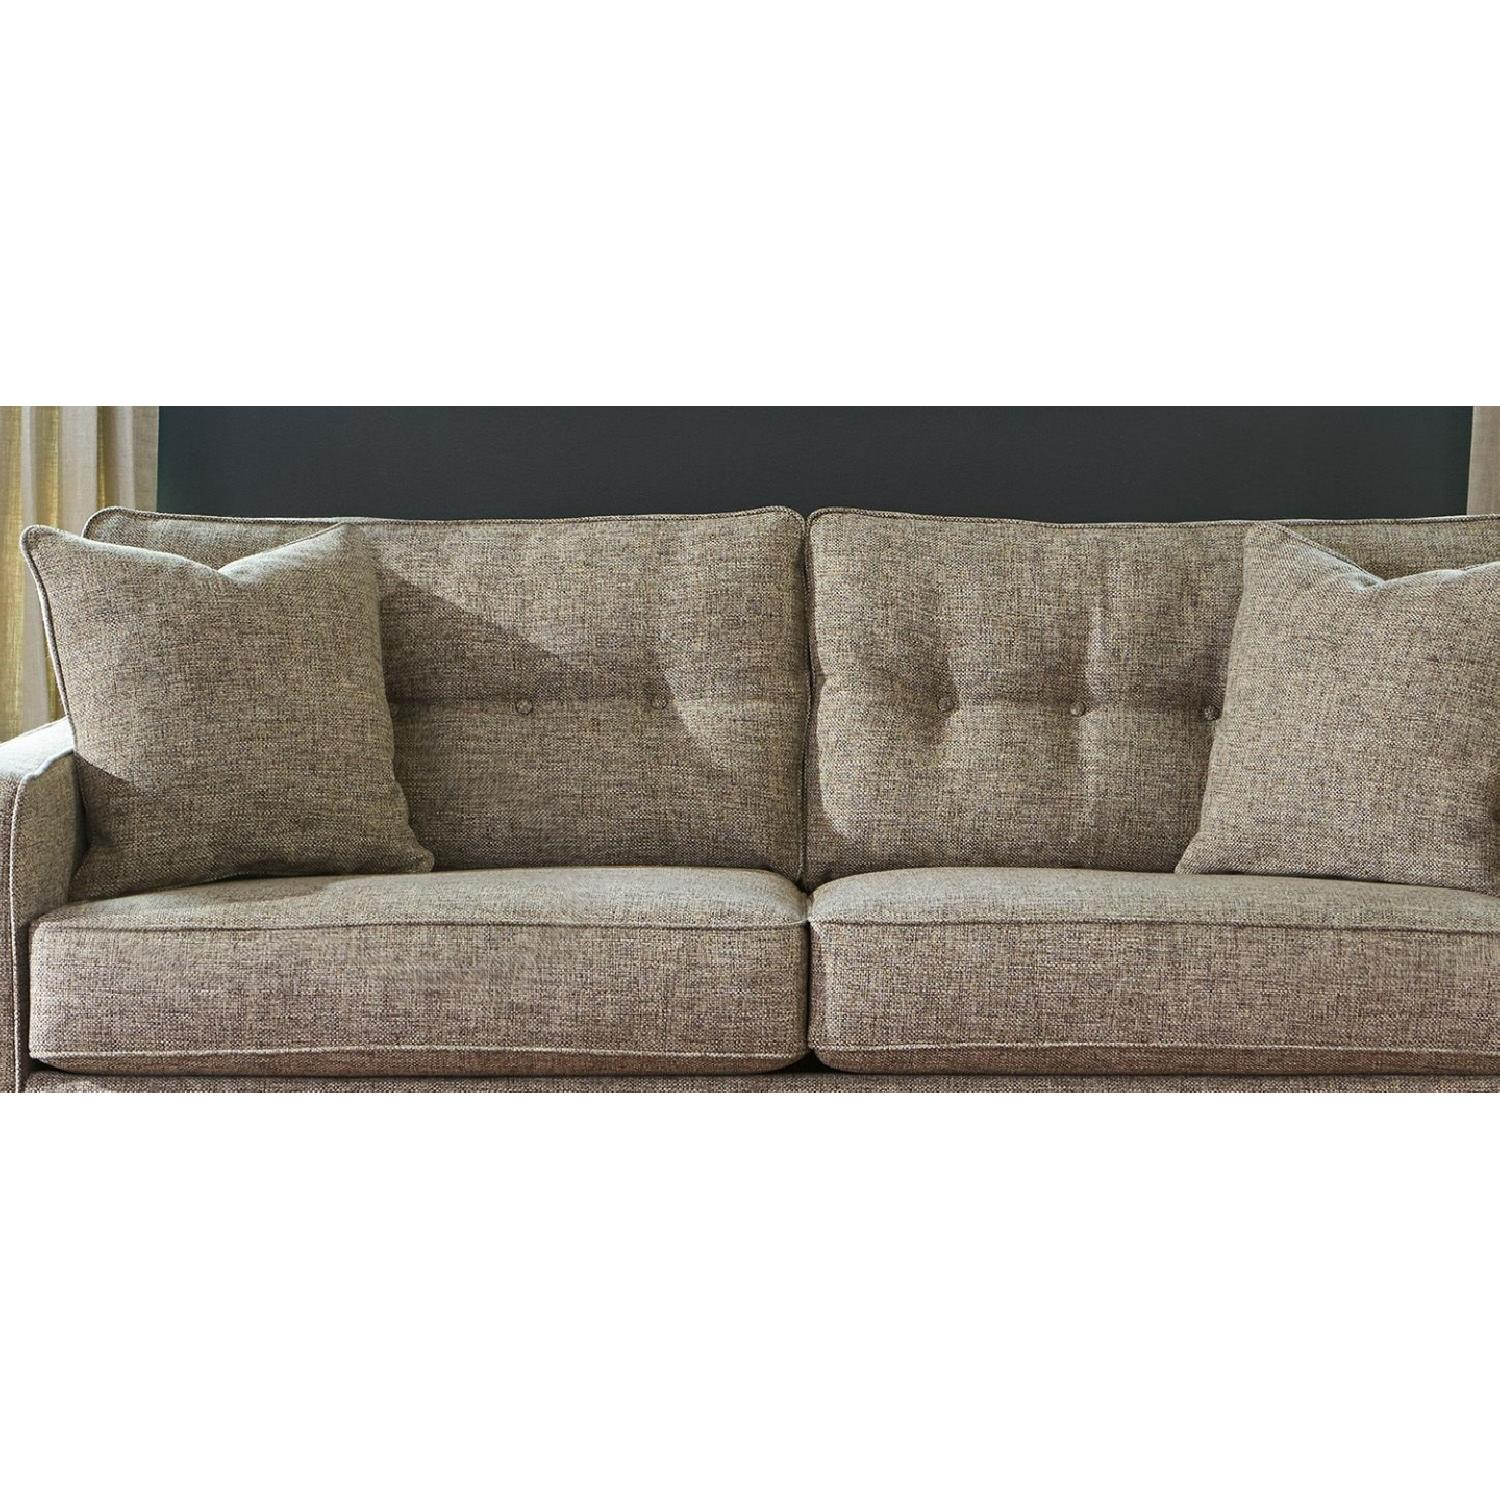 Ashley Chento Jute Sofa in Beige/Natural - image-4